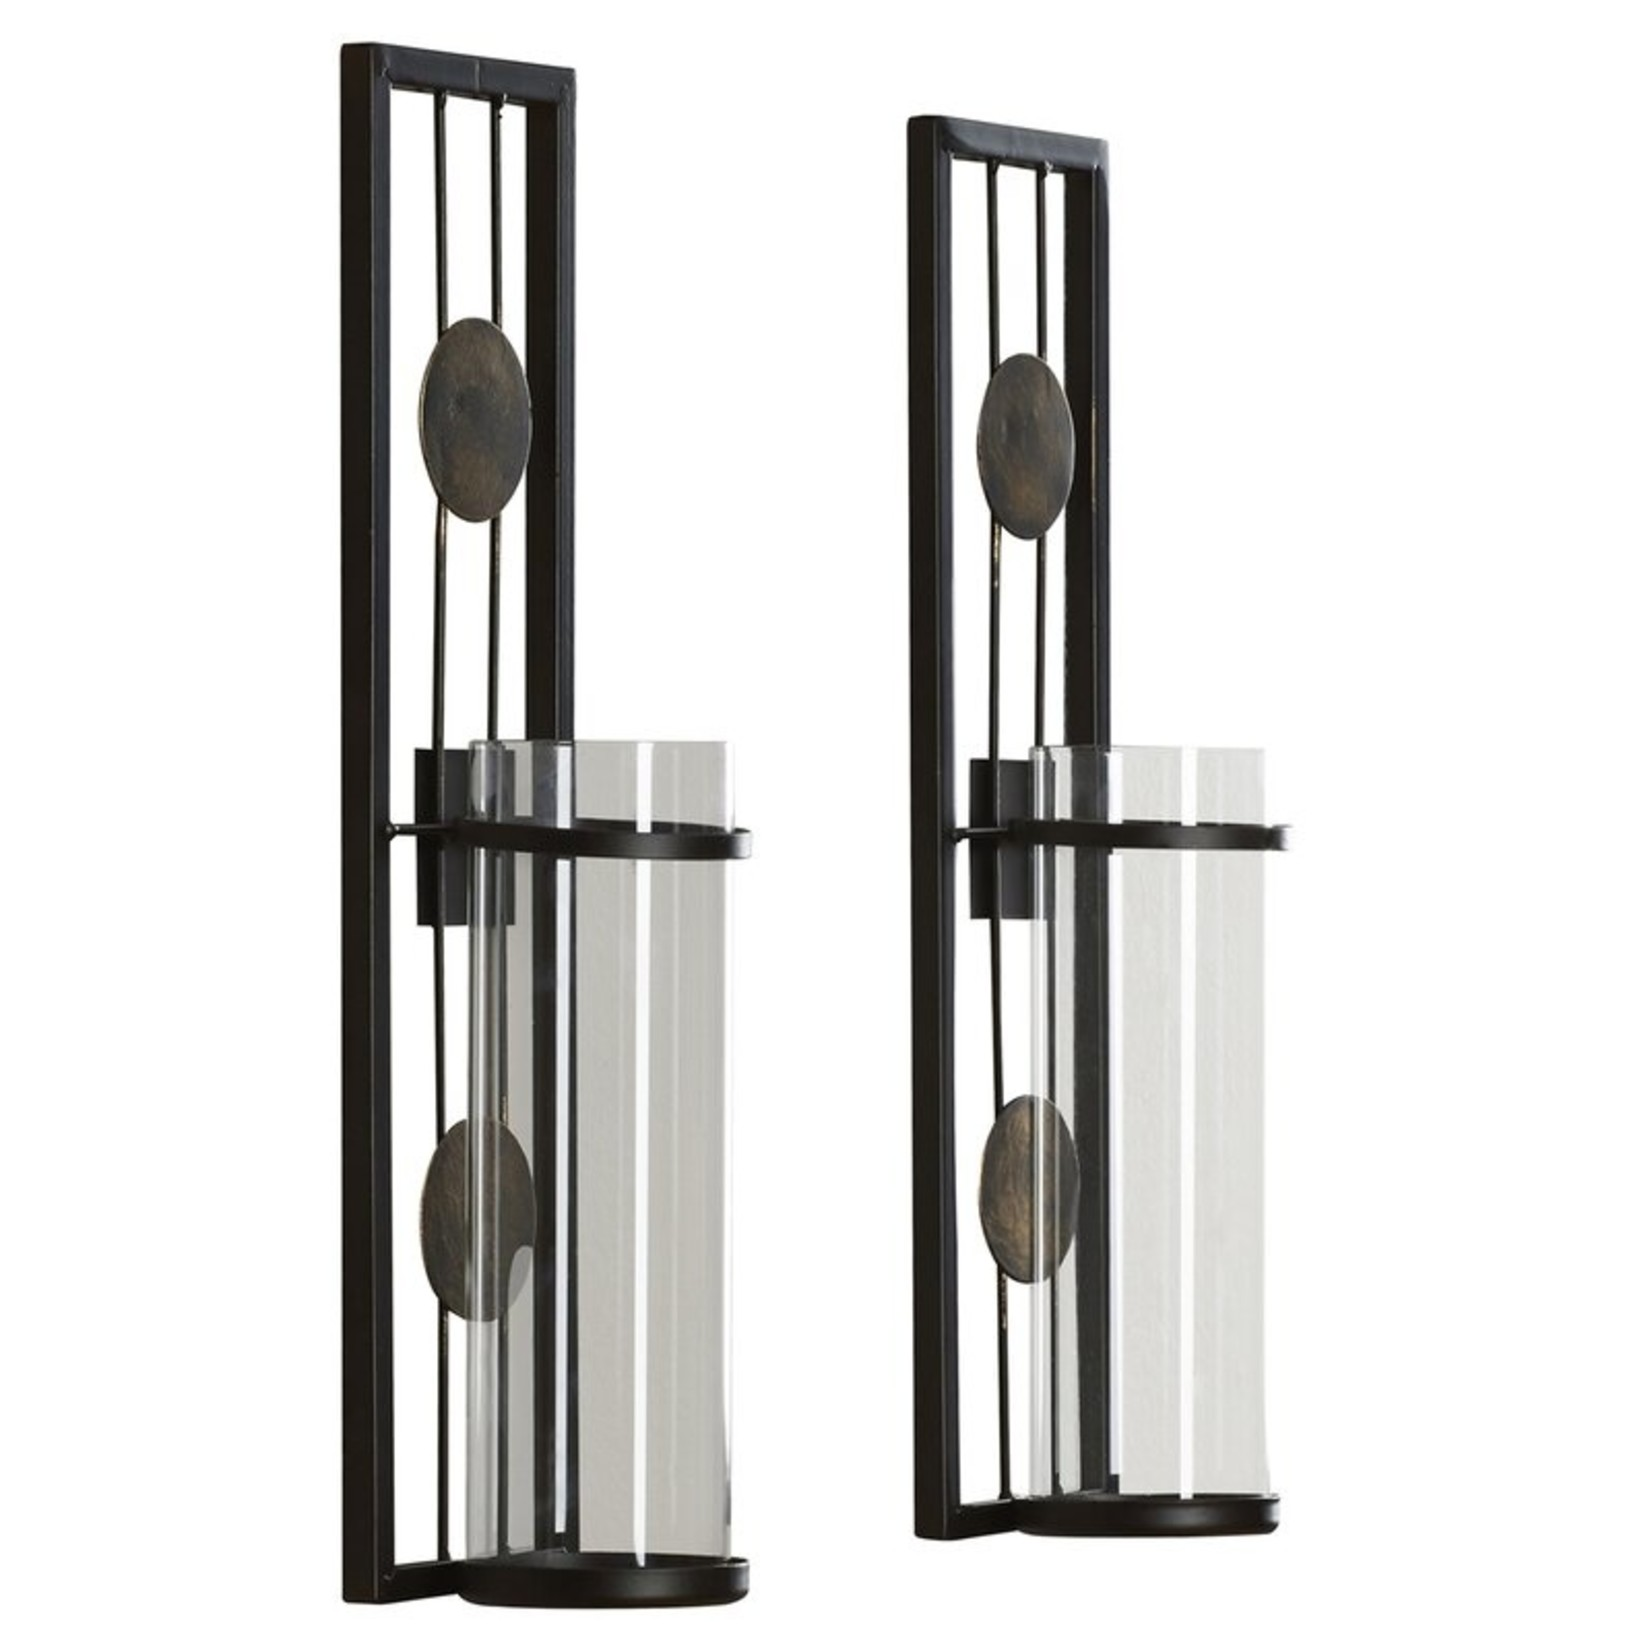 *Contemporary Tall Metal Wall Sconce - Set of 2